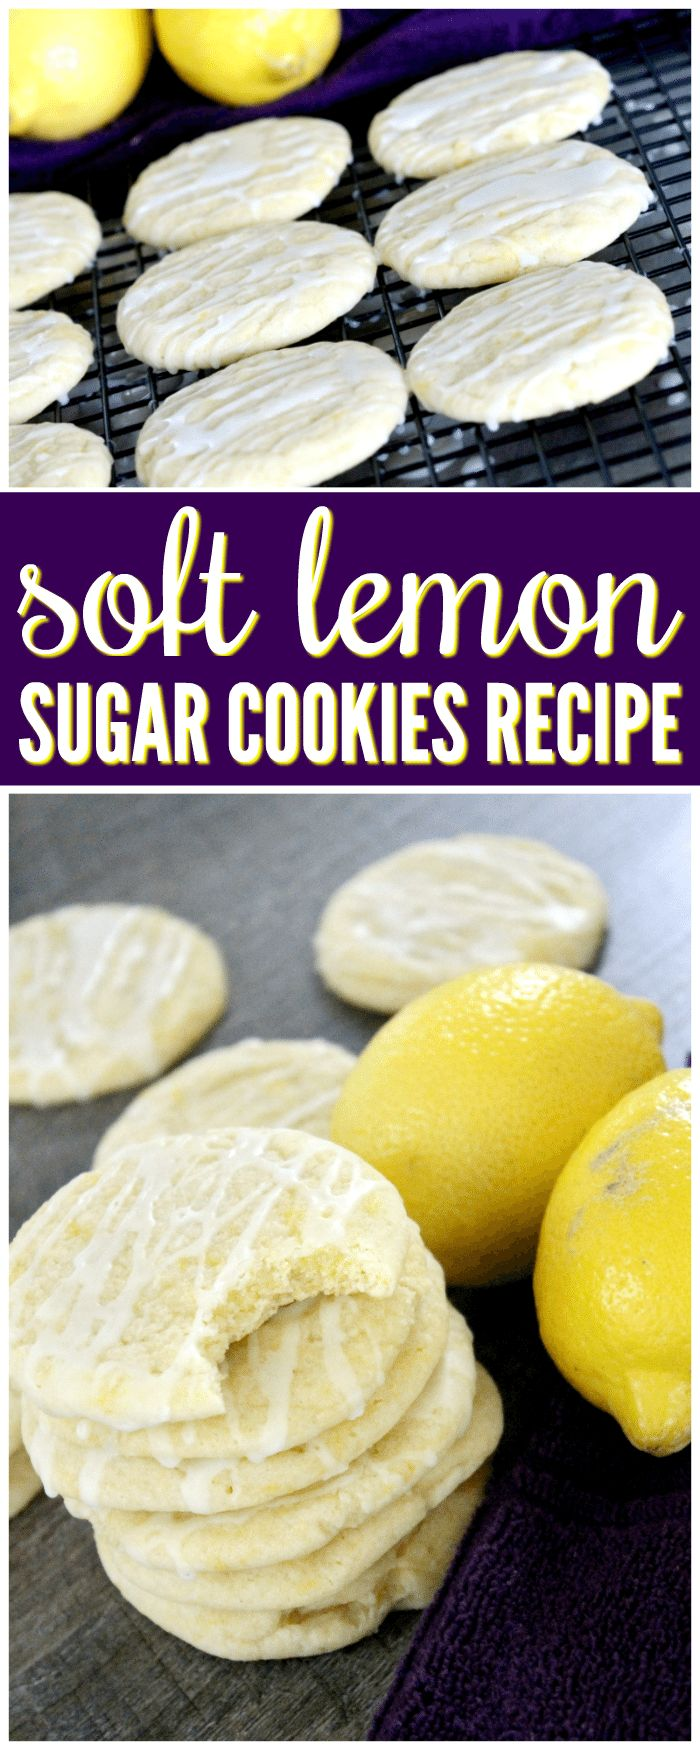 Give this Soft Lemon Sugar Cookies Recipe Made from Scratch a try for your friends and family today!